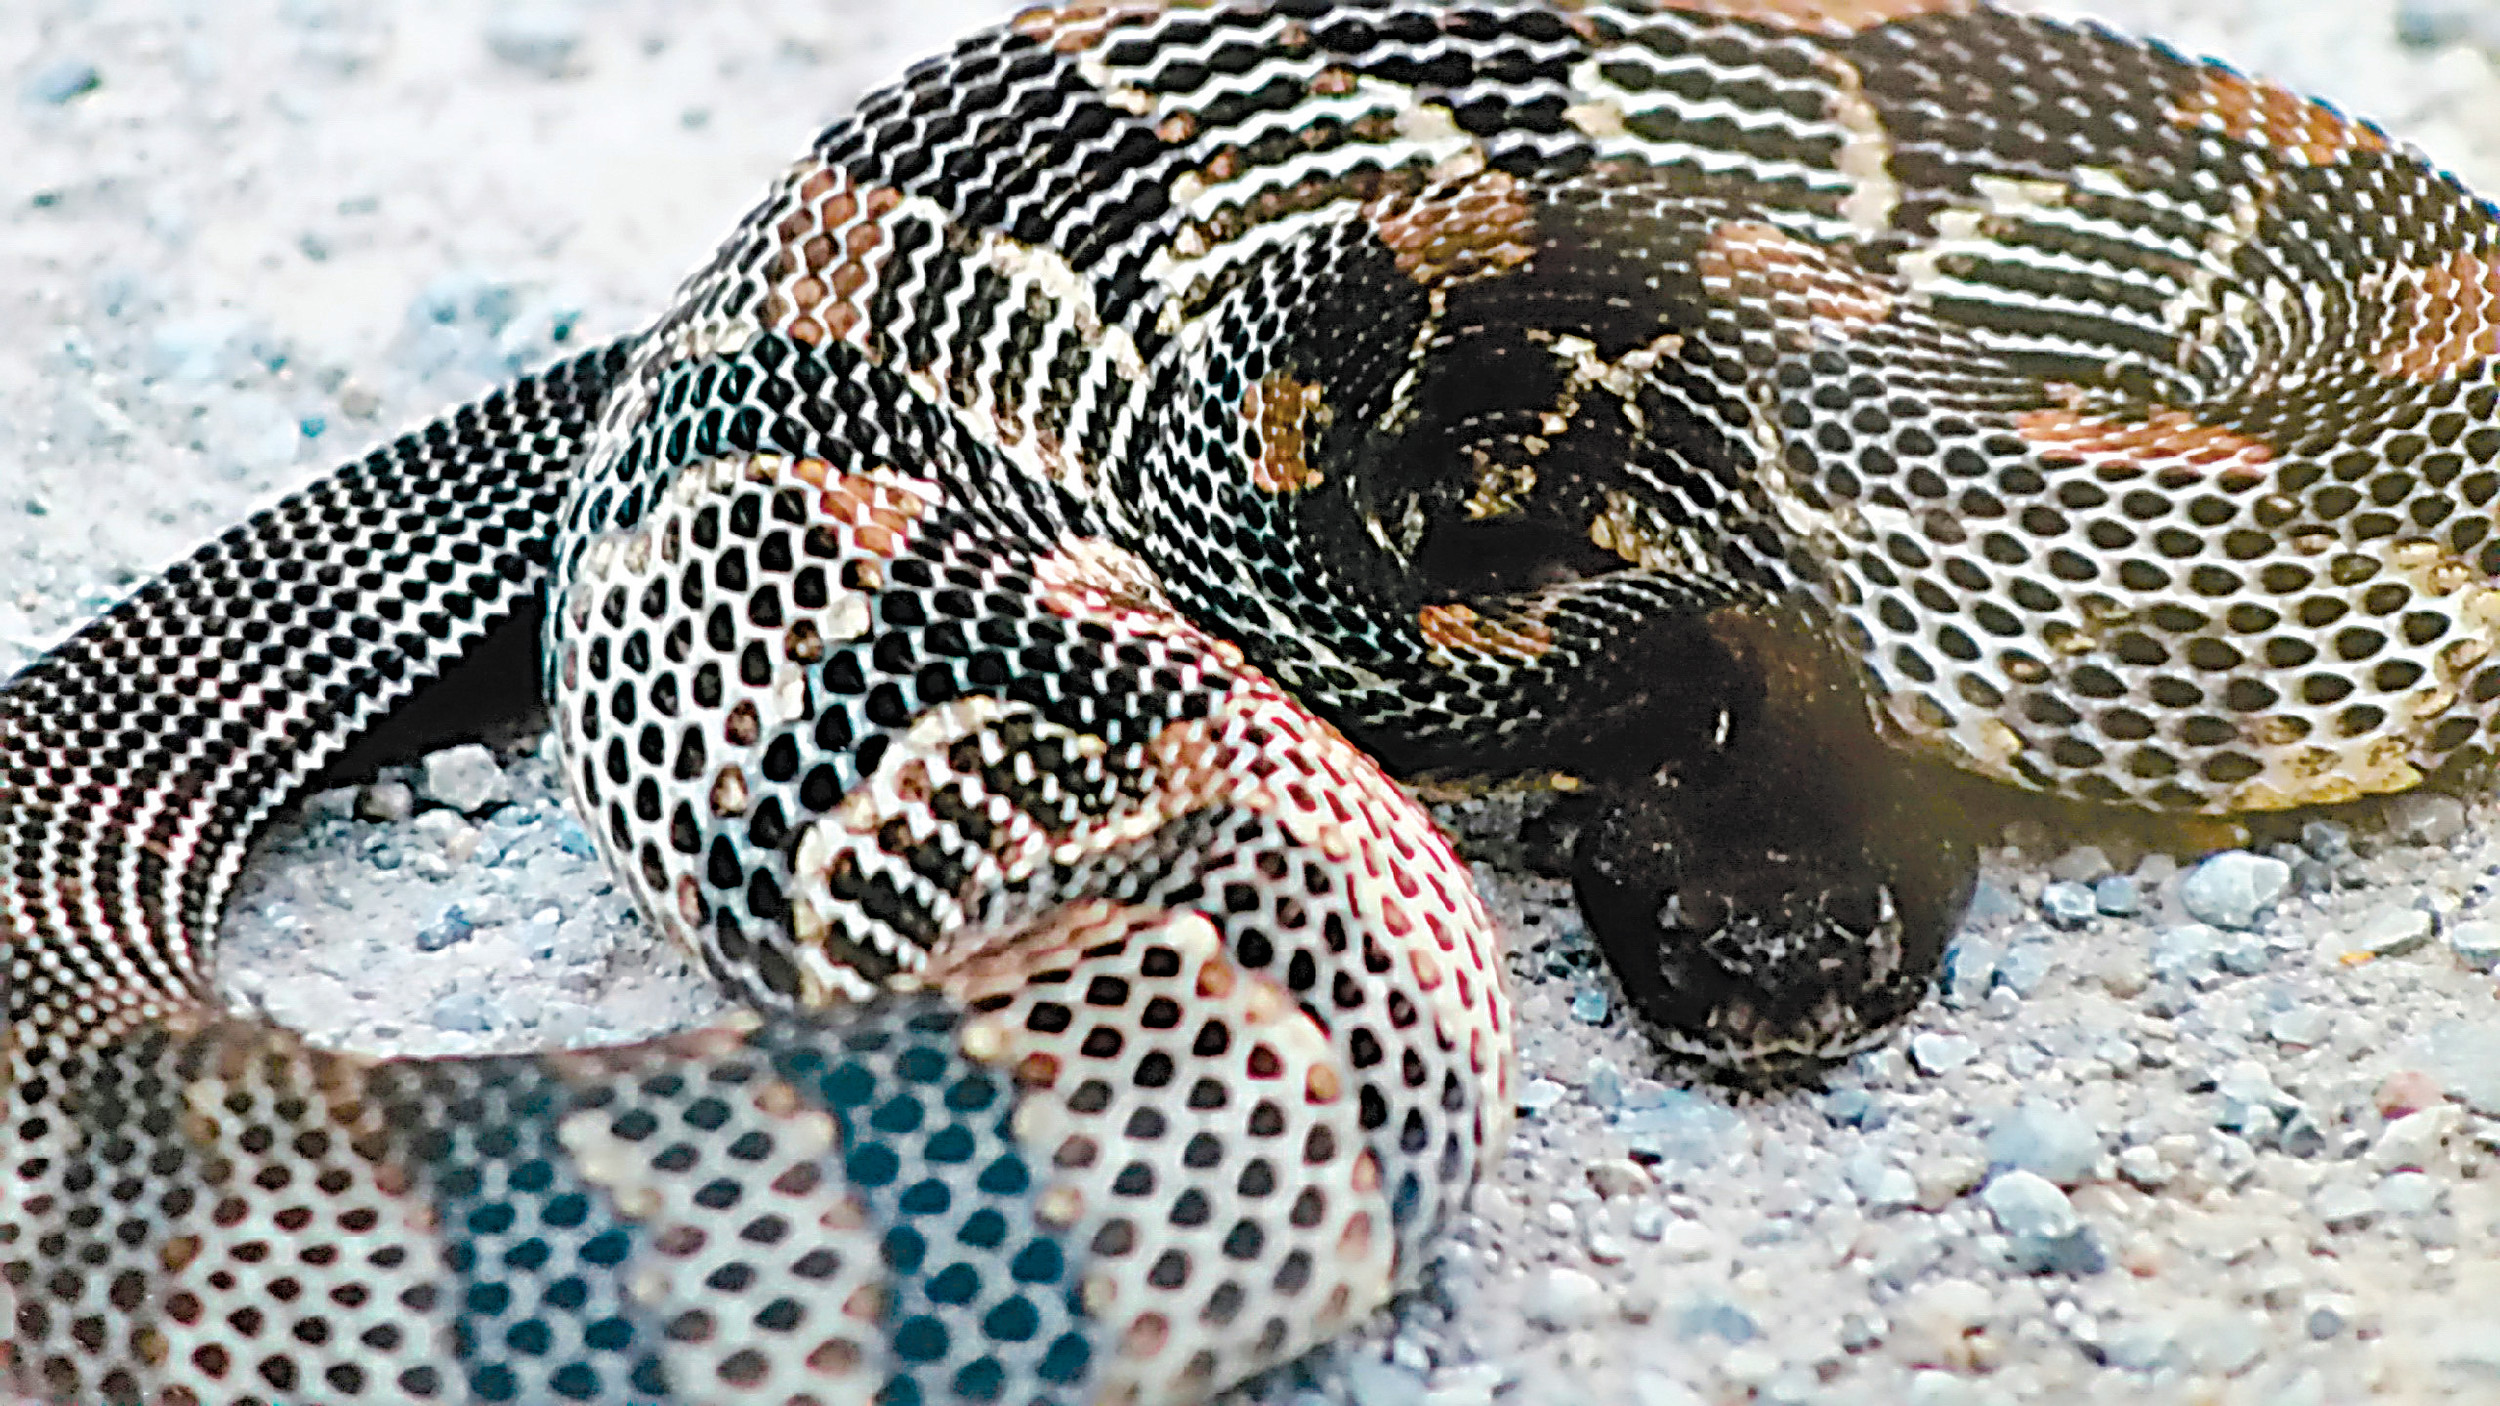 This photo of a black phase timber rattler was taken at a safe distance.